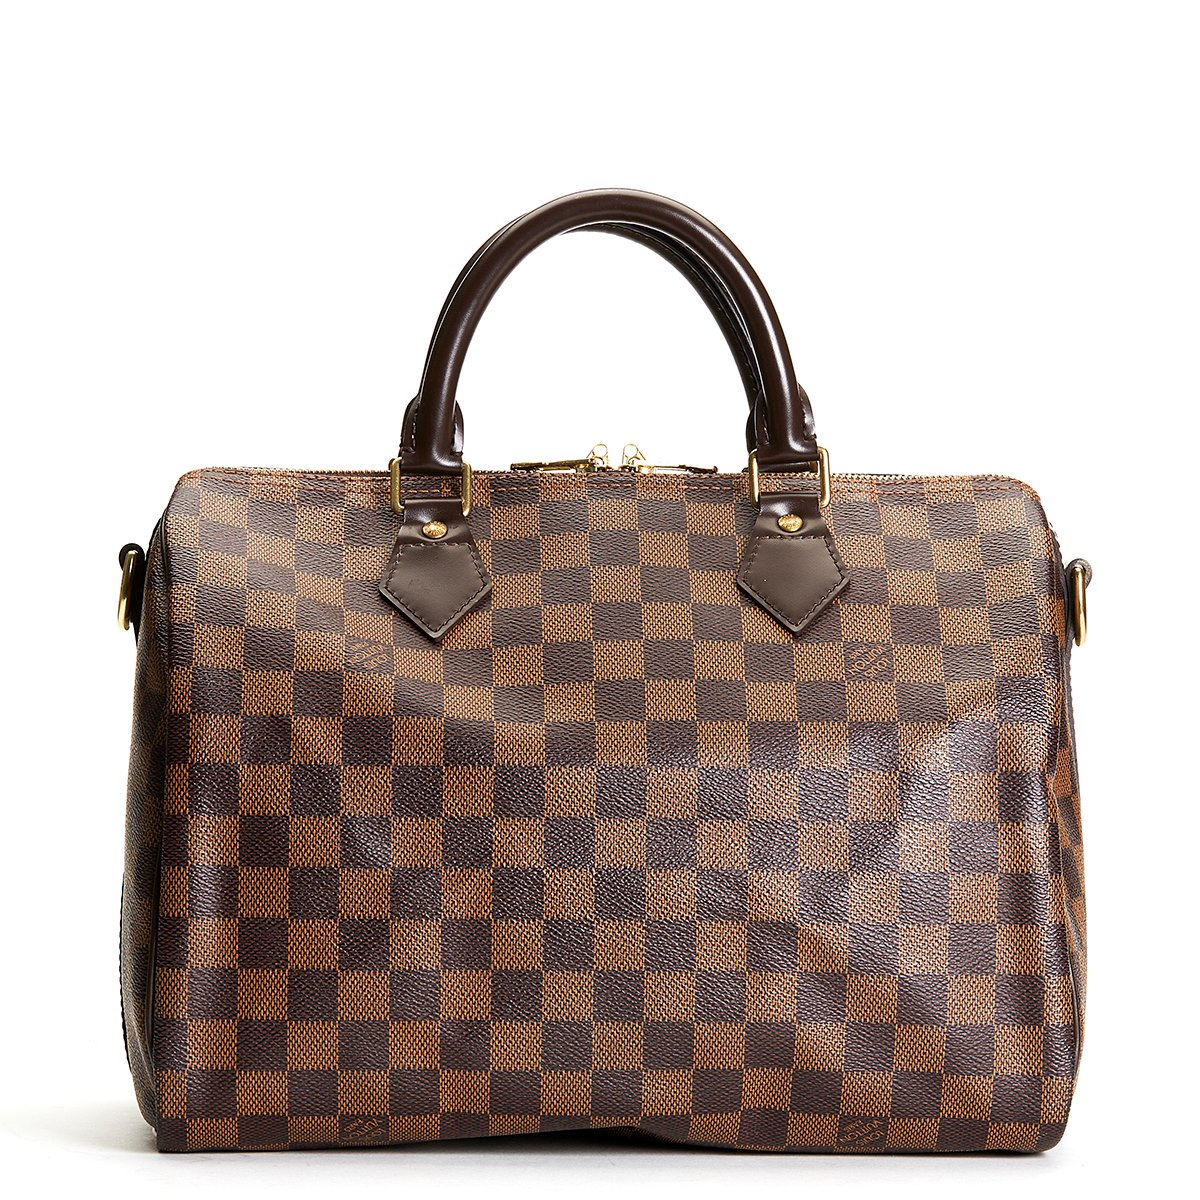 louis vuitton speedy 30 bandouliere 2012 hb248 second hand handbags. Black Bedroom Furniture Sets. Home Design Ideas